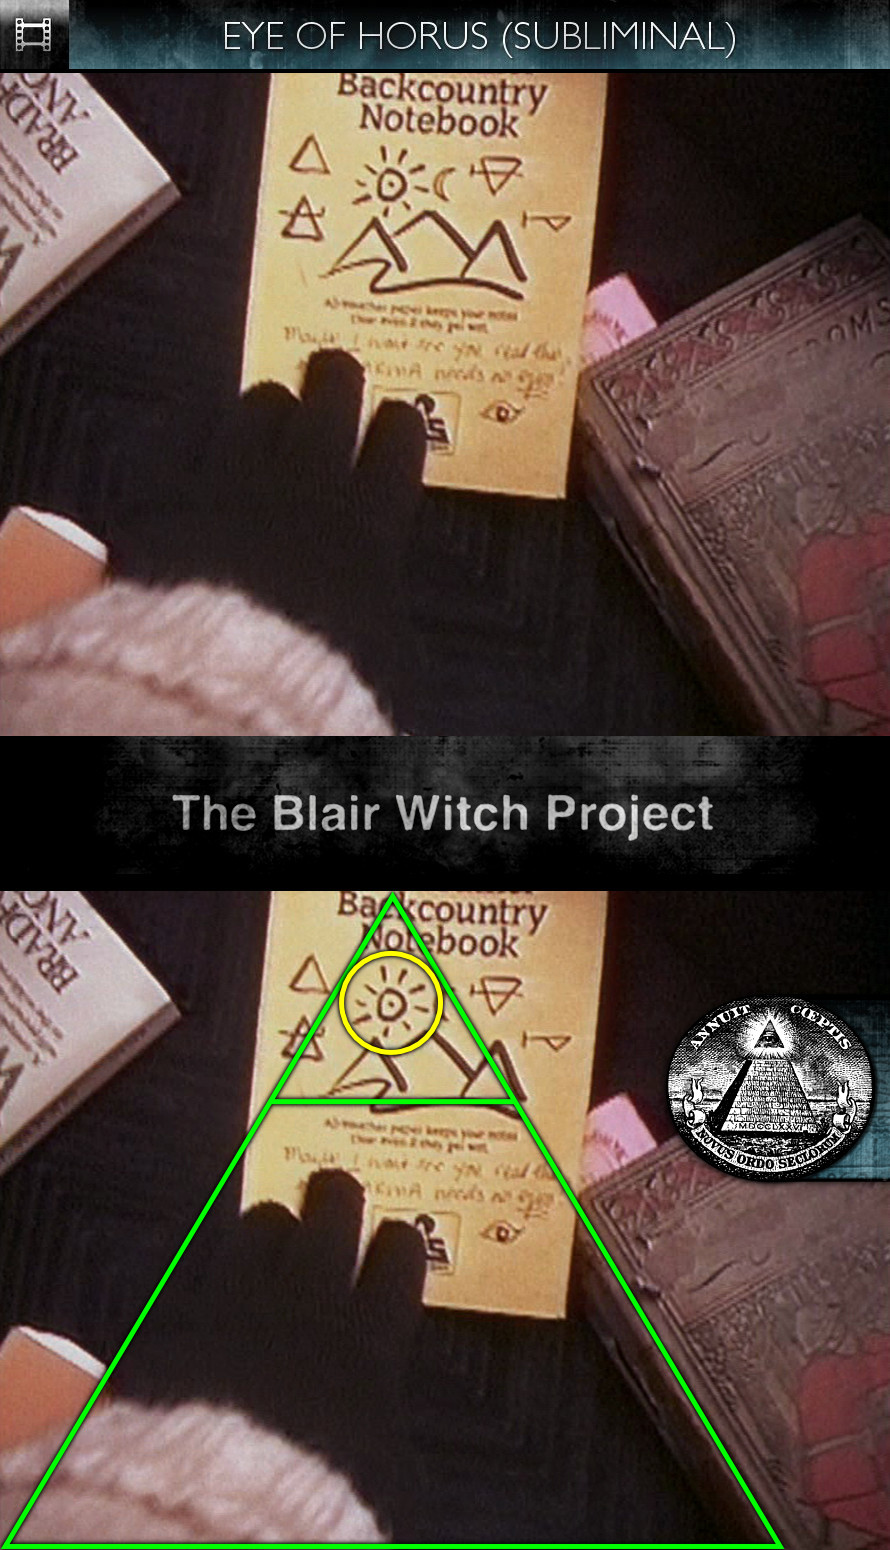 The Blair Witch Project (1999) - Eye of Horus - Subliminal